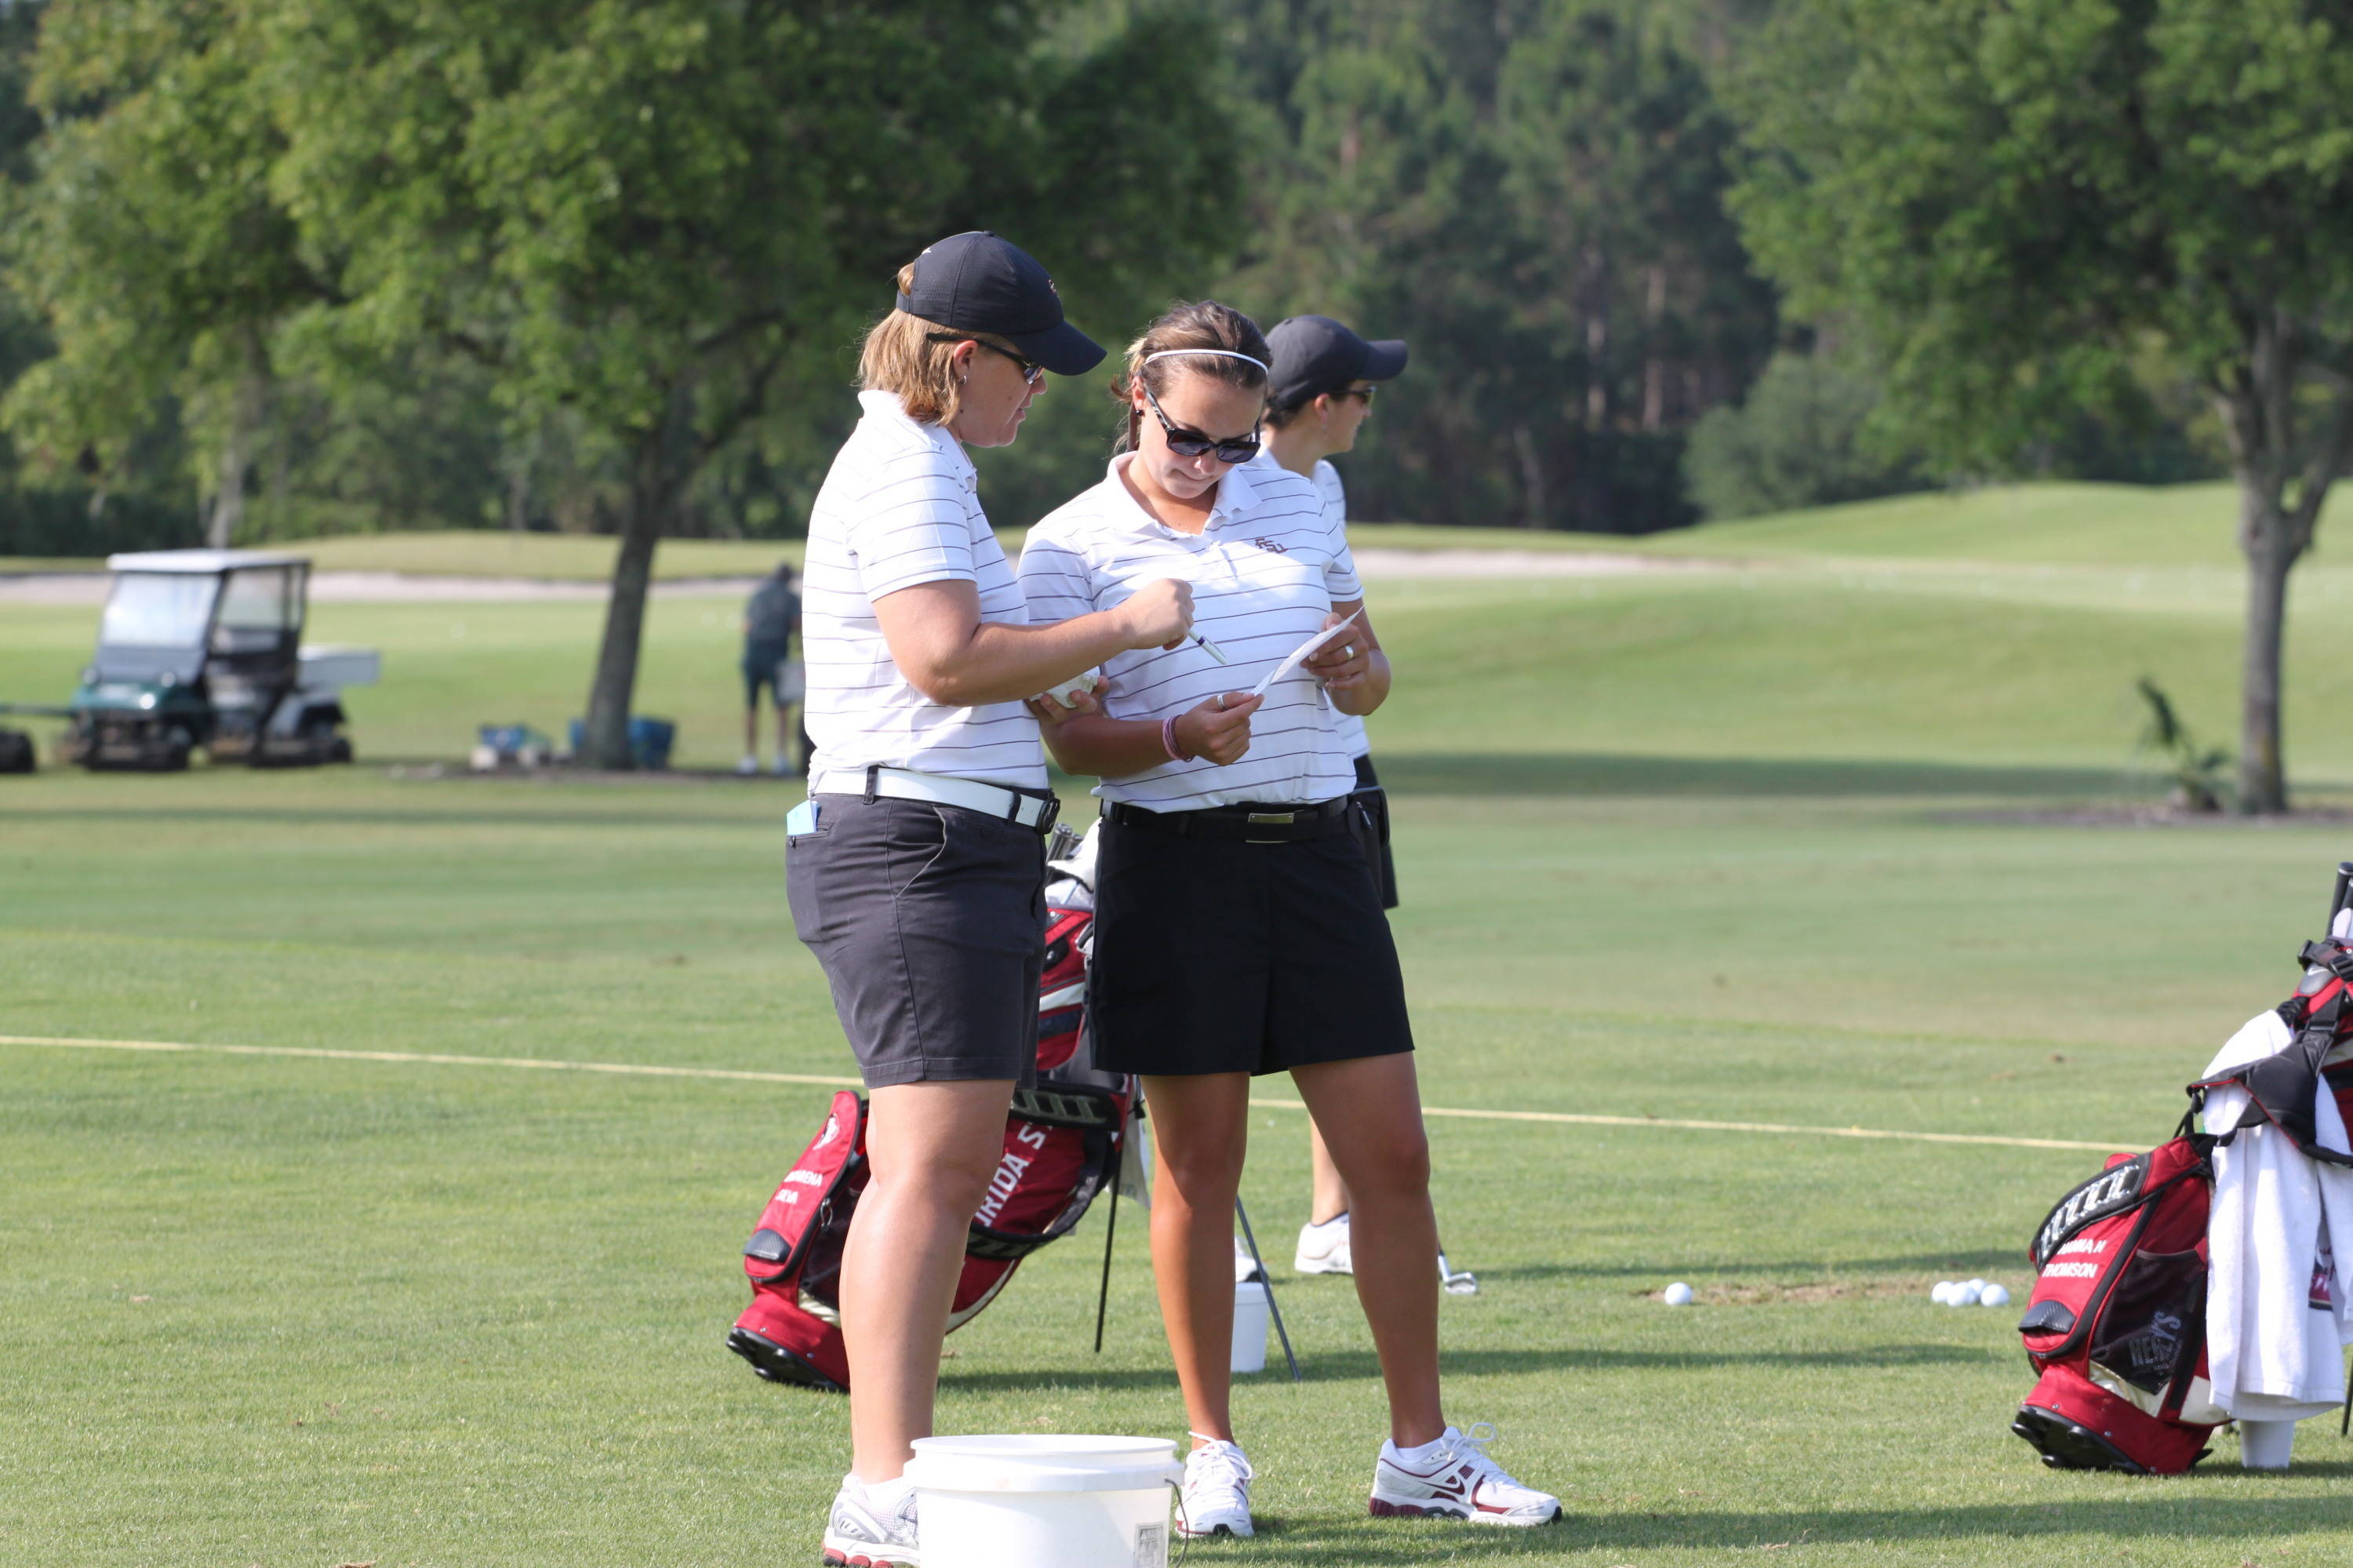 2011 NCAA Women's Golf - Head Coach Amy Bond and assistant coach Lindsay Koth prepare for the Seminoles' practice round.